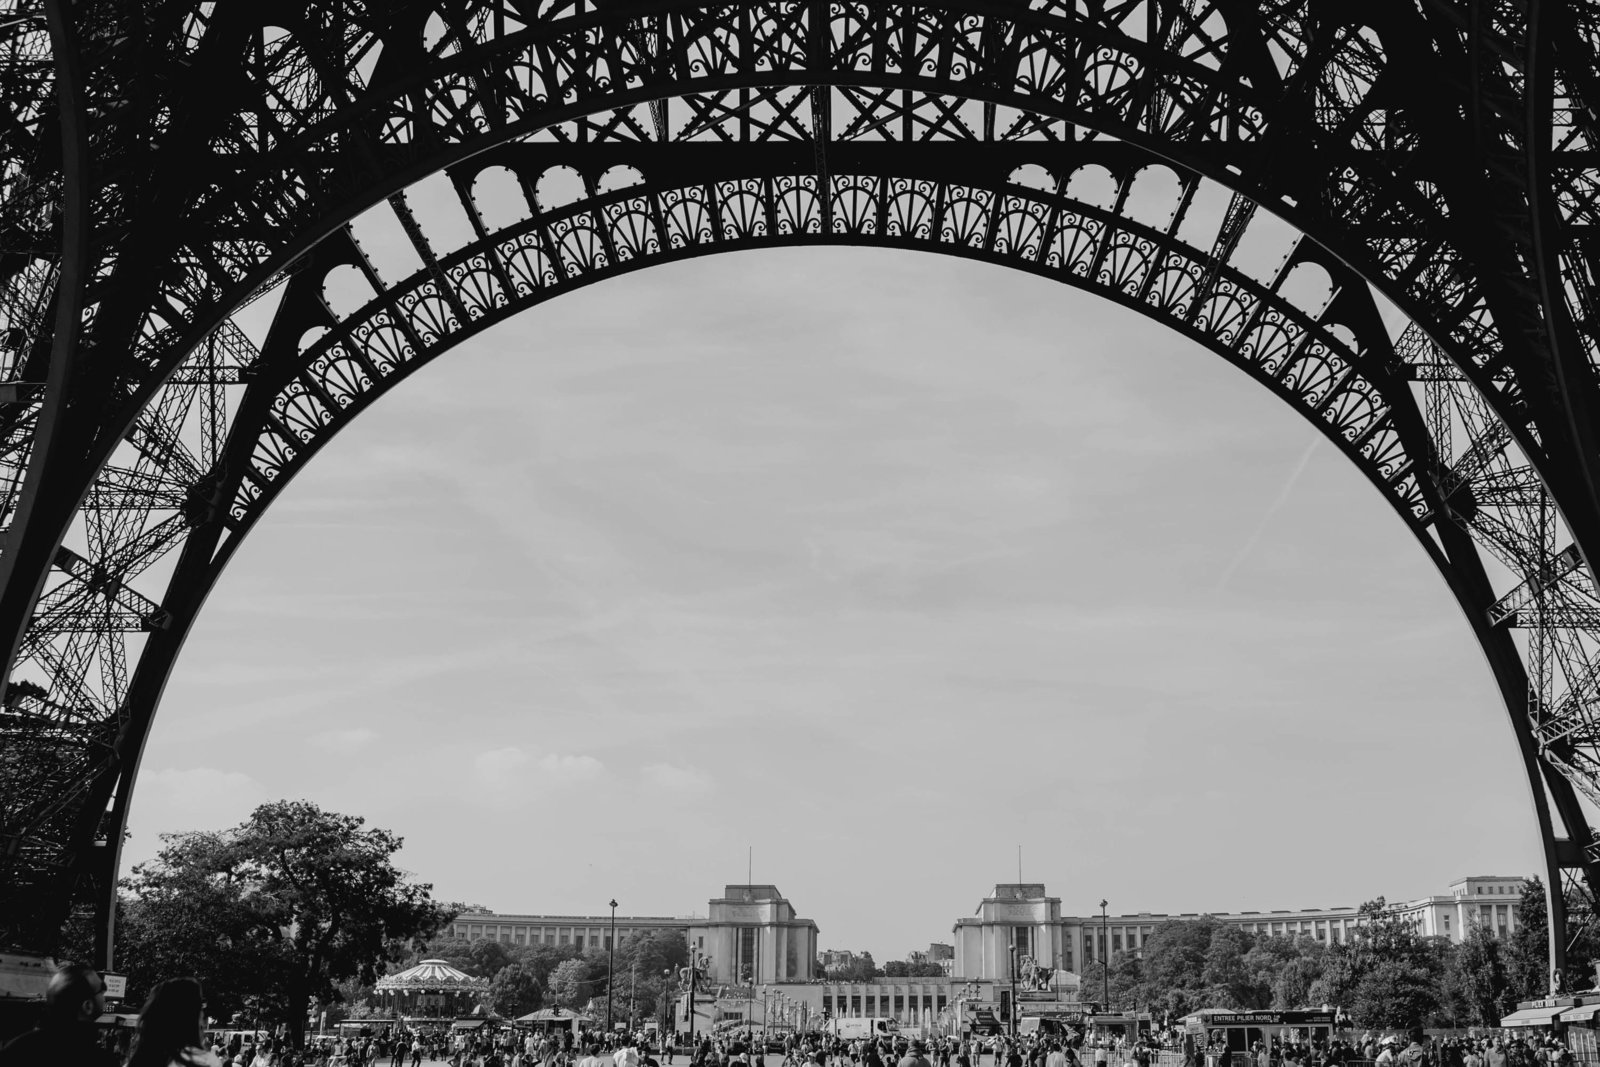 eiffel-tower-paris-france-travel-destination-wedding-kate-timbers-photography-1730